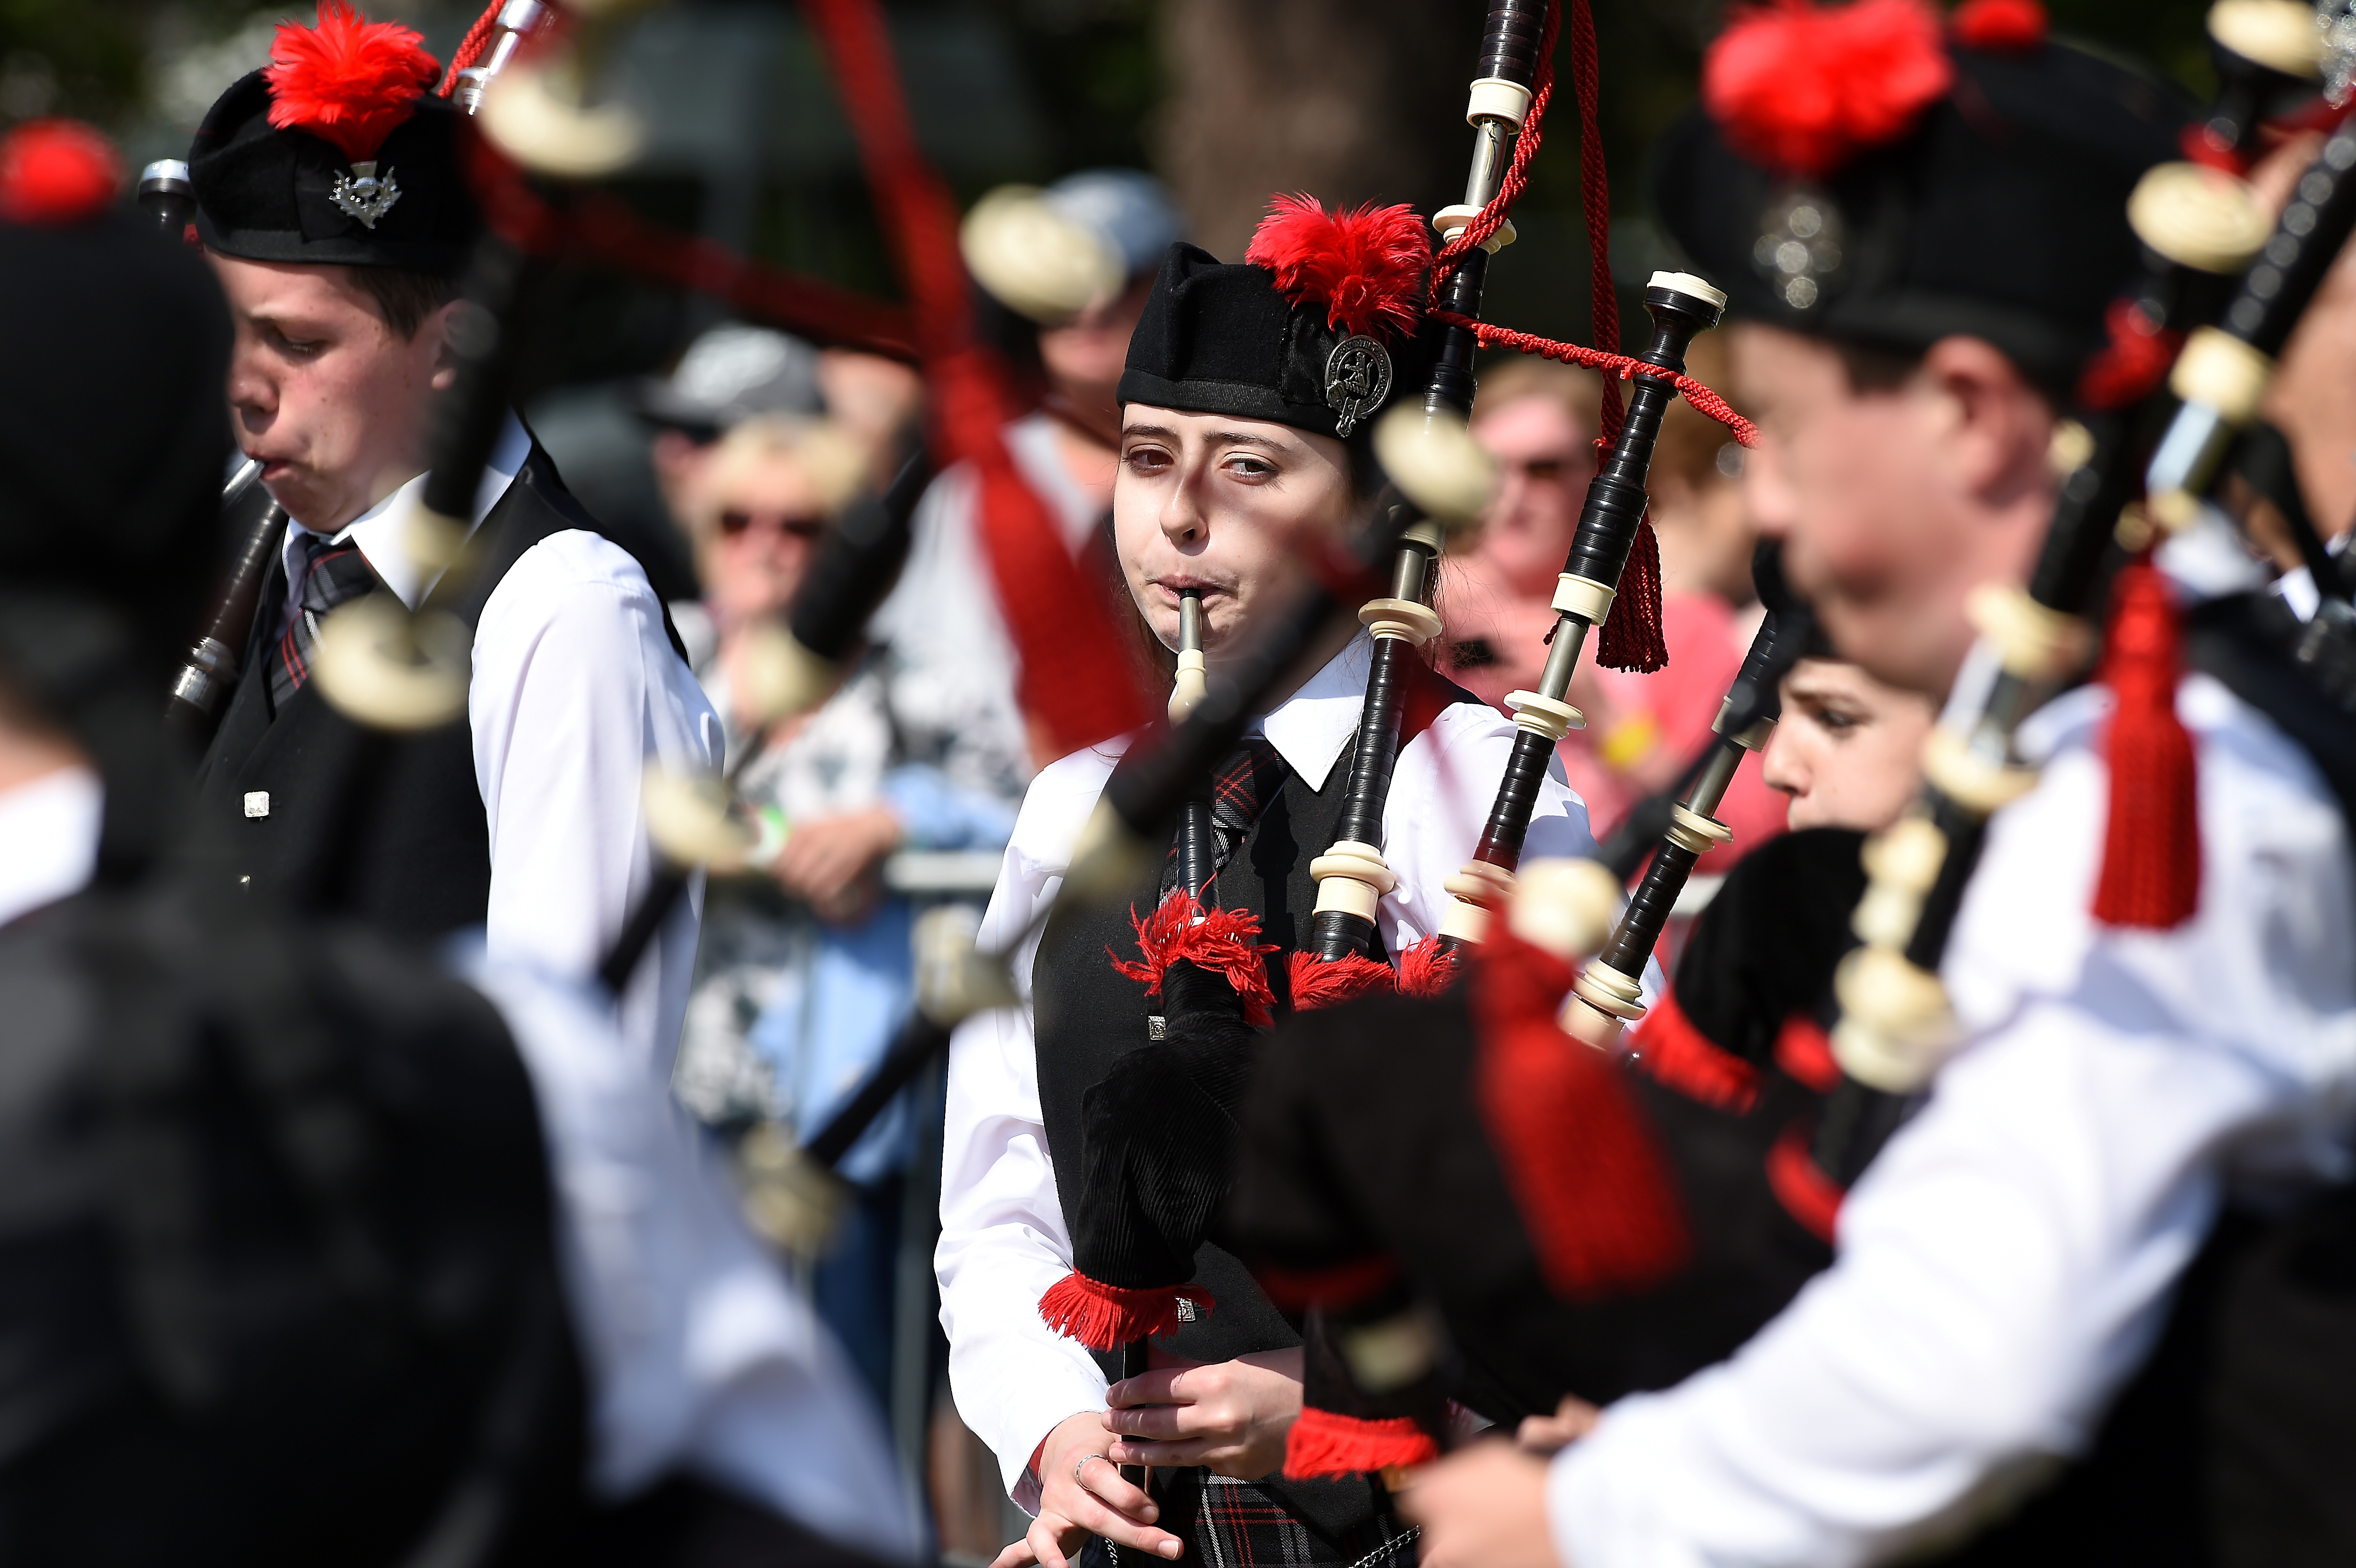 The European Pipe Band Championships held in Forres.